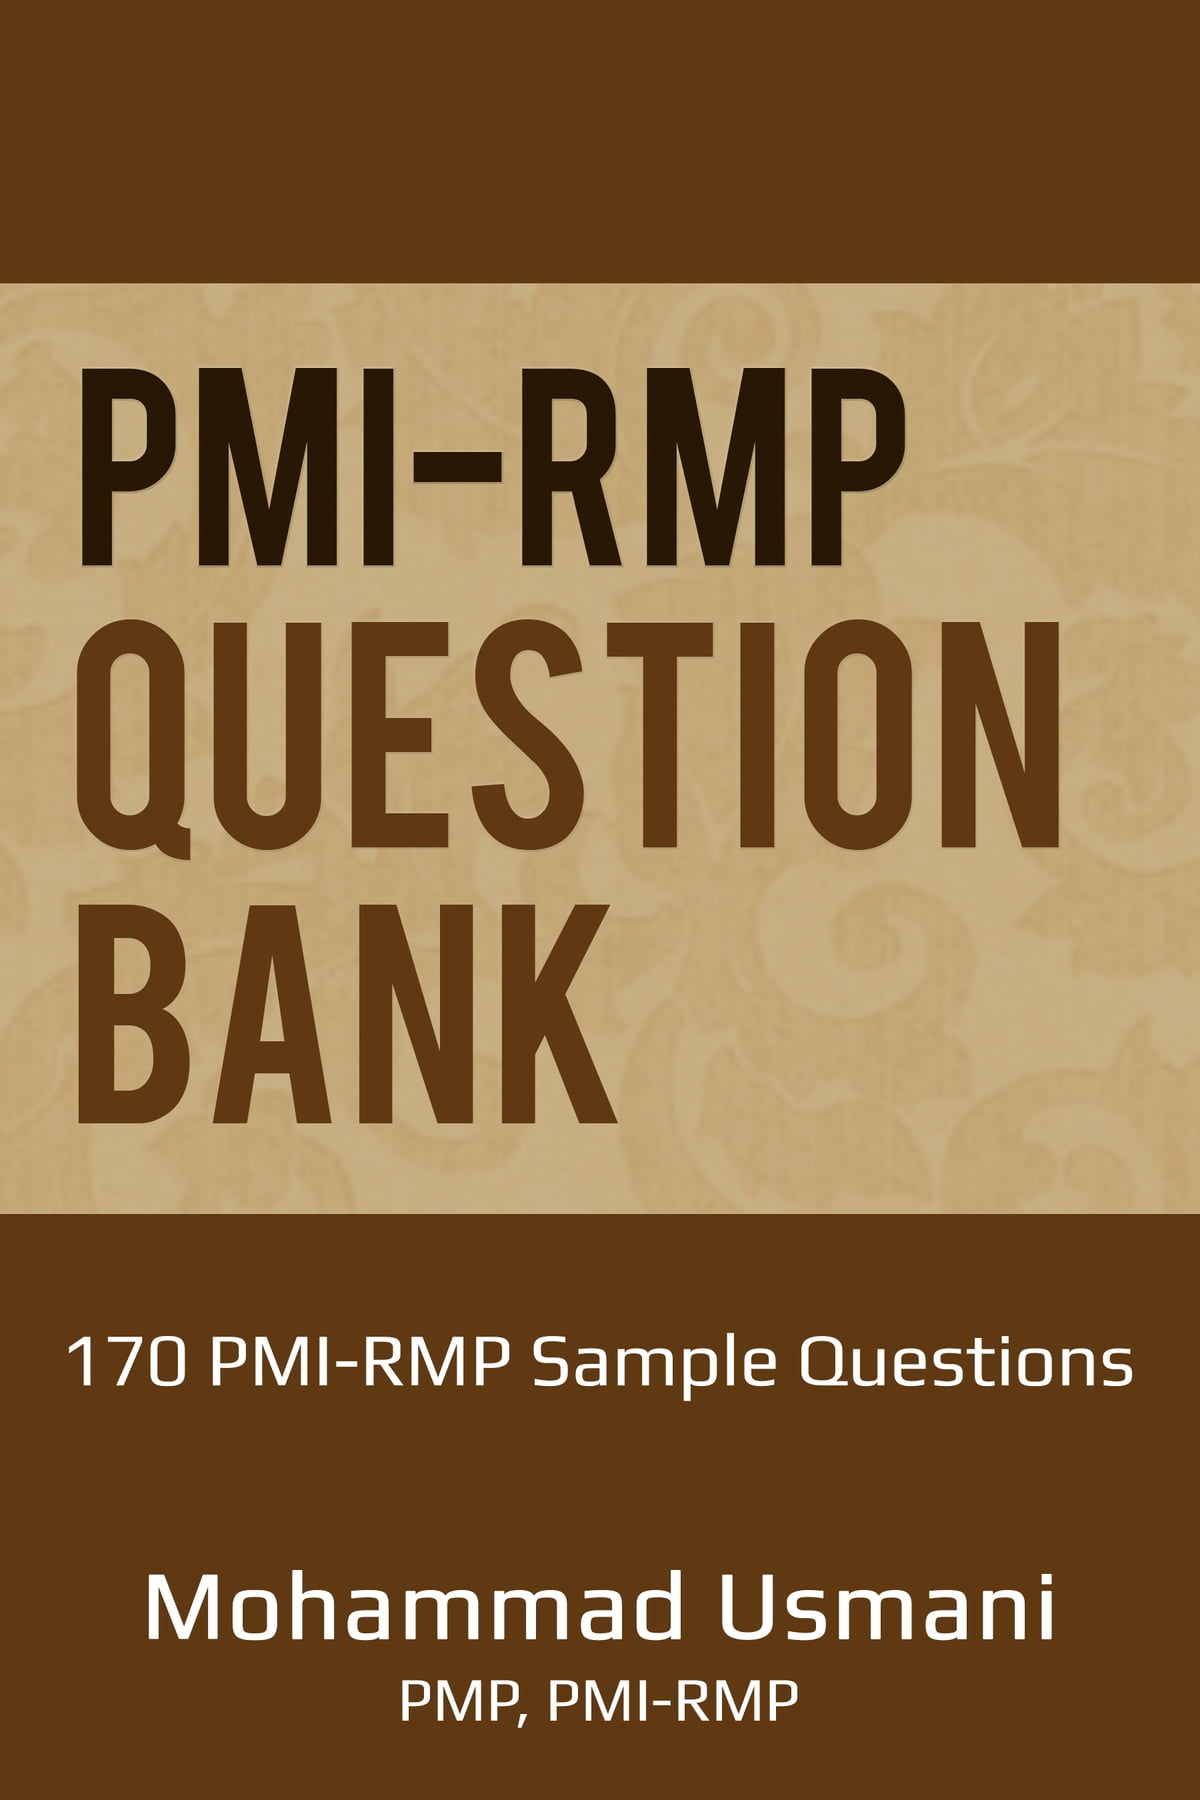 Pmi Rmp Question Bank Ebook Di Mohammad Usmani 9781311729071